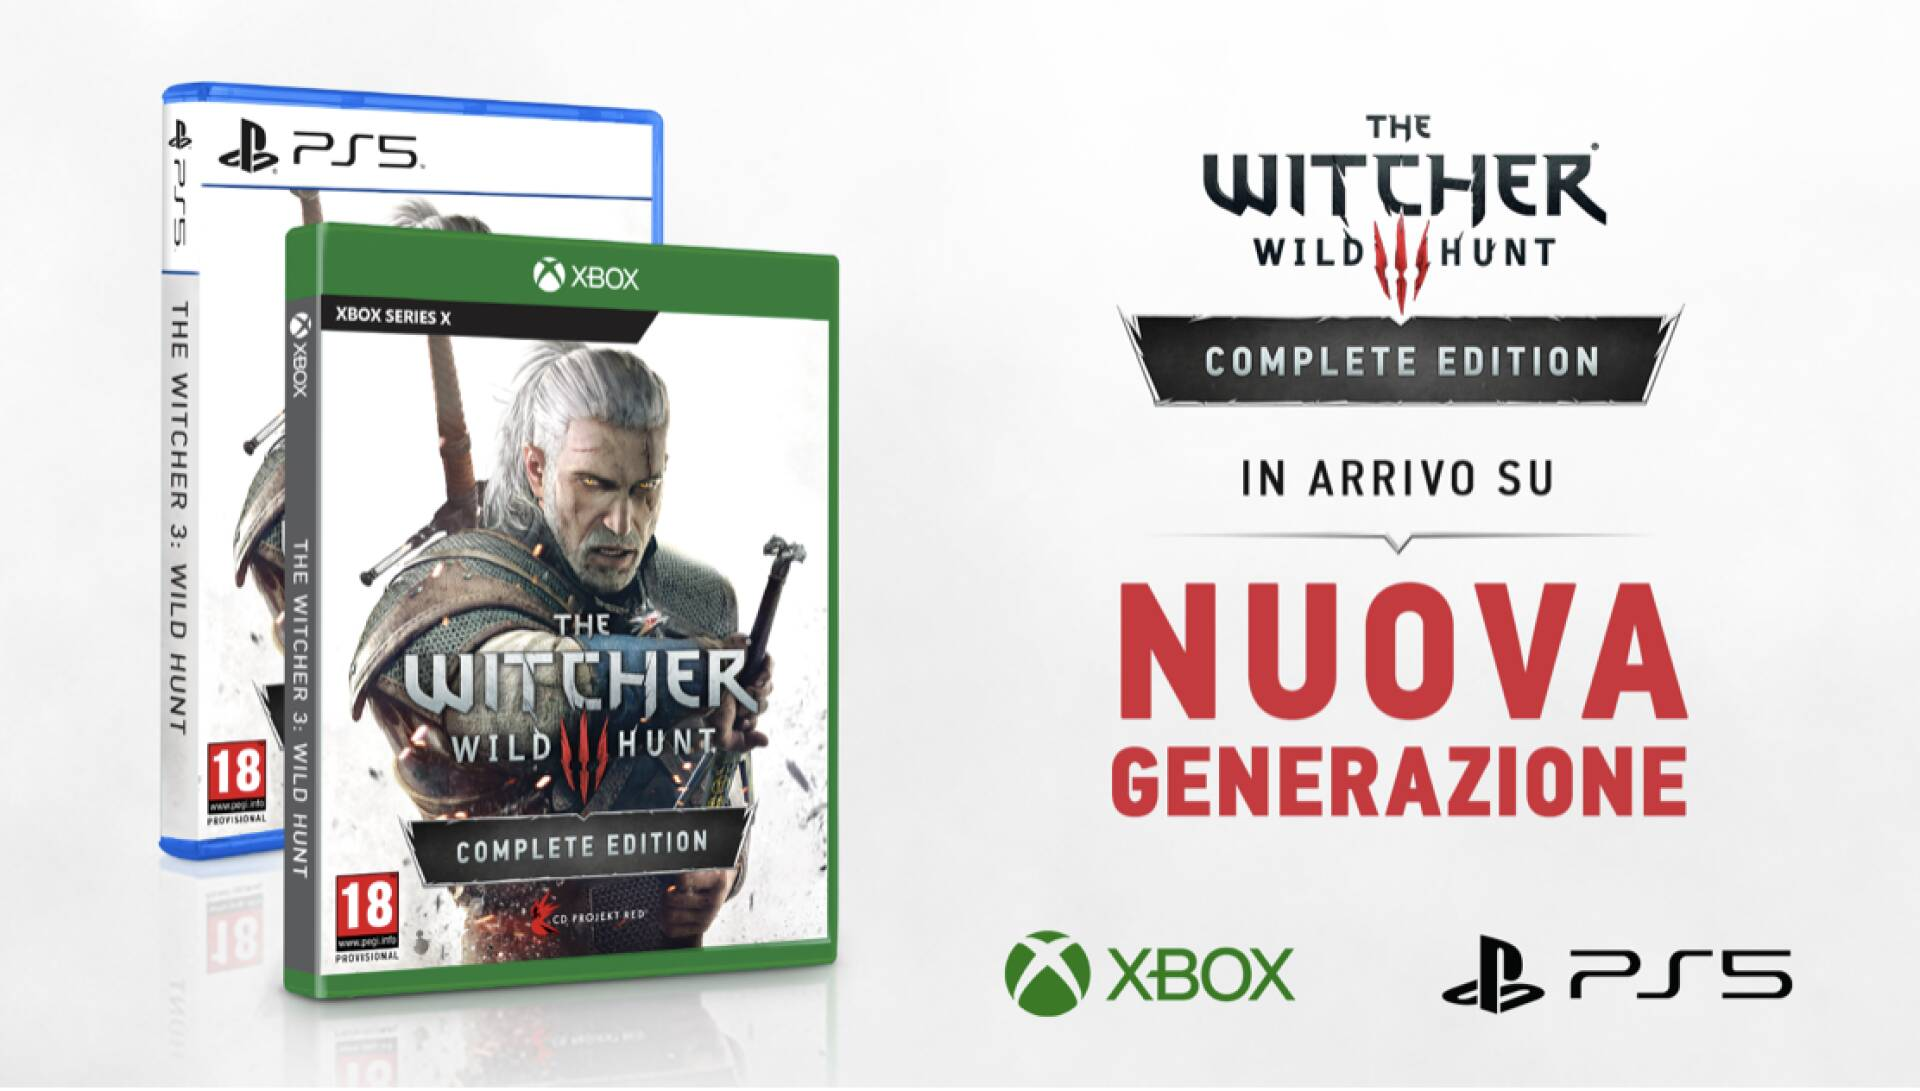 the-witcher-3-ps5-22201.1920x1080.jpg